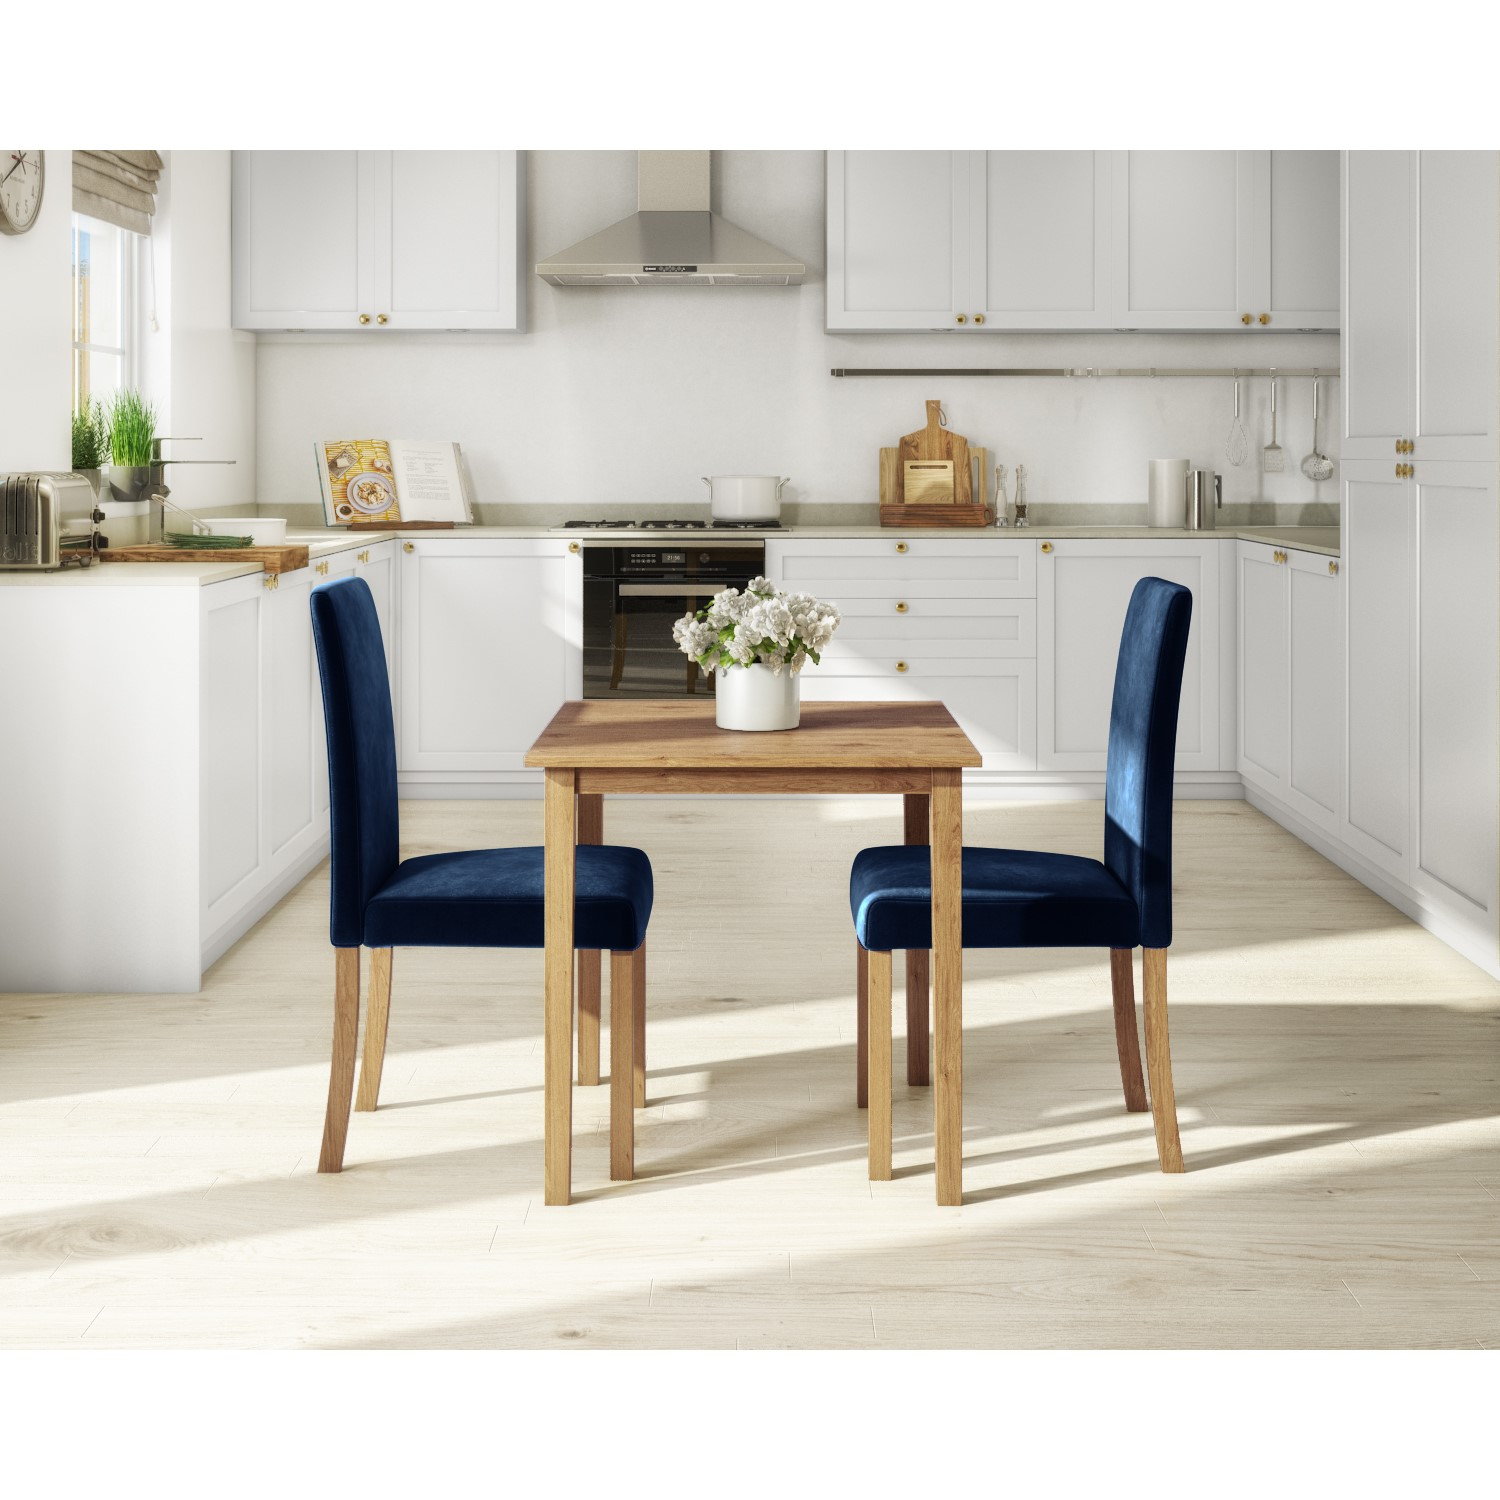 best loved cd4f4 d6600 GRADE A2 - New Haven Small Space Saving Square Dining Table - Light Oak